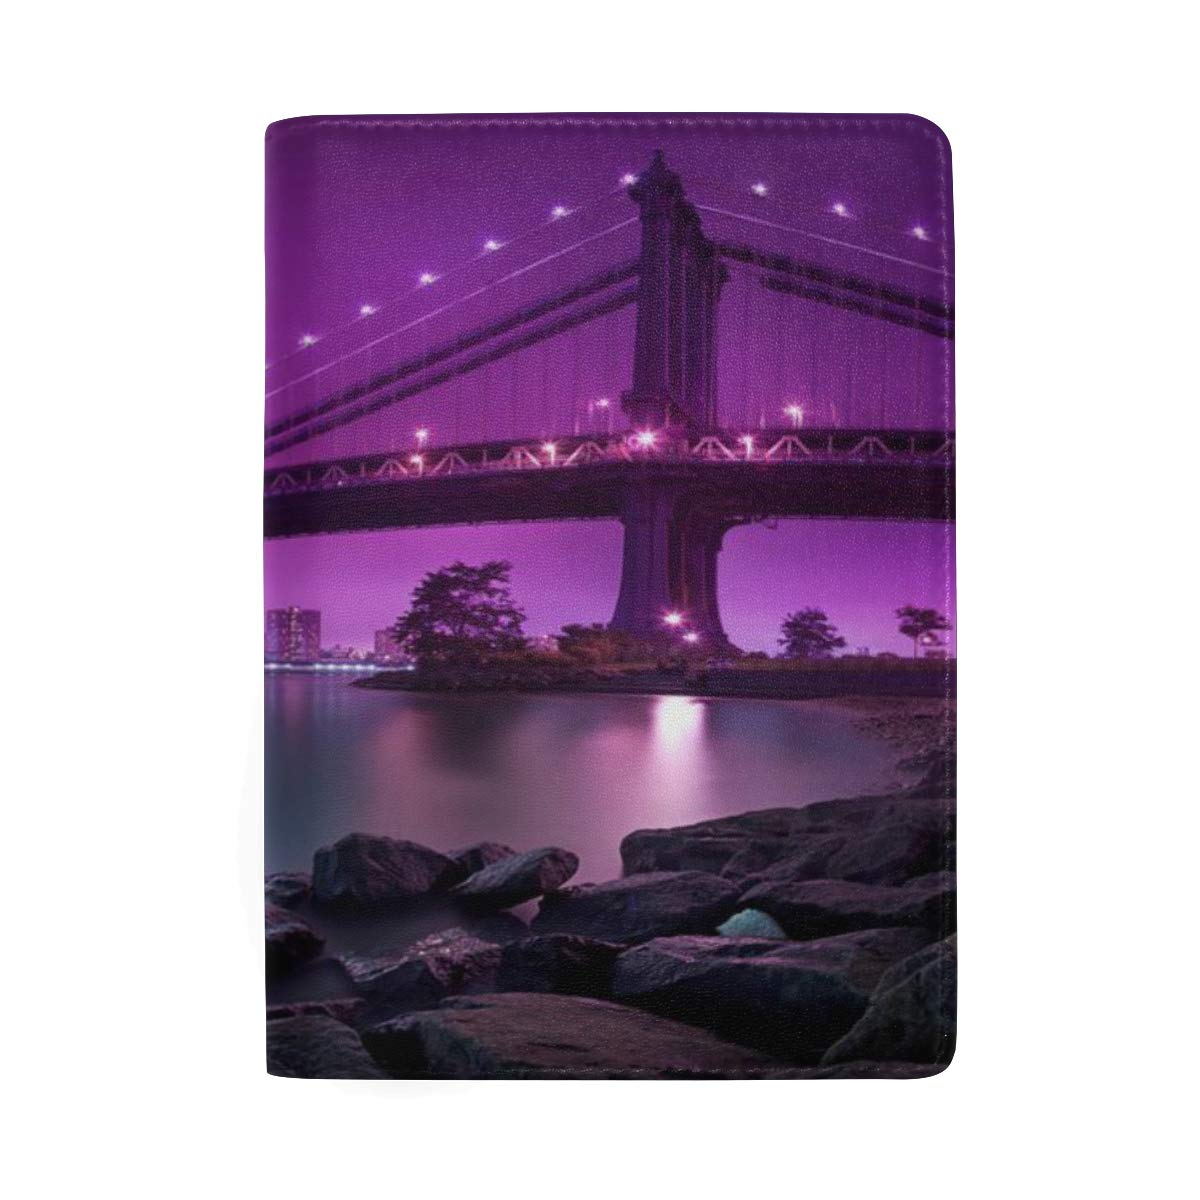 Night Awesome Bridge Leather Passport Holder Cover Case Protector for Men Women Travel with Slots